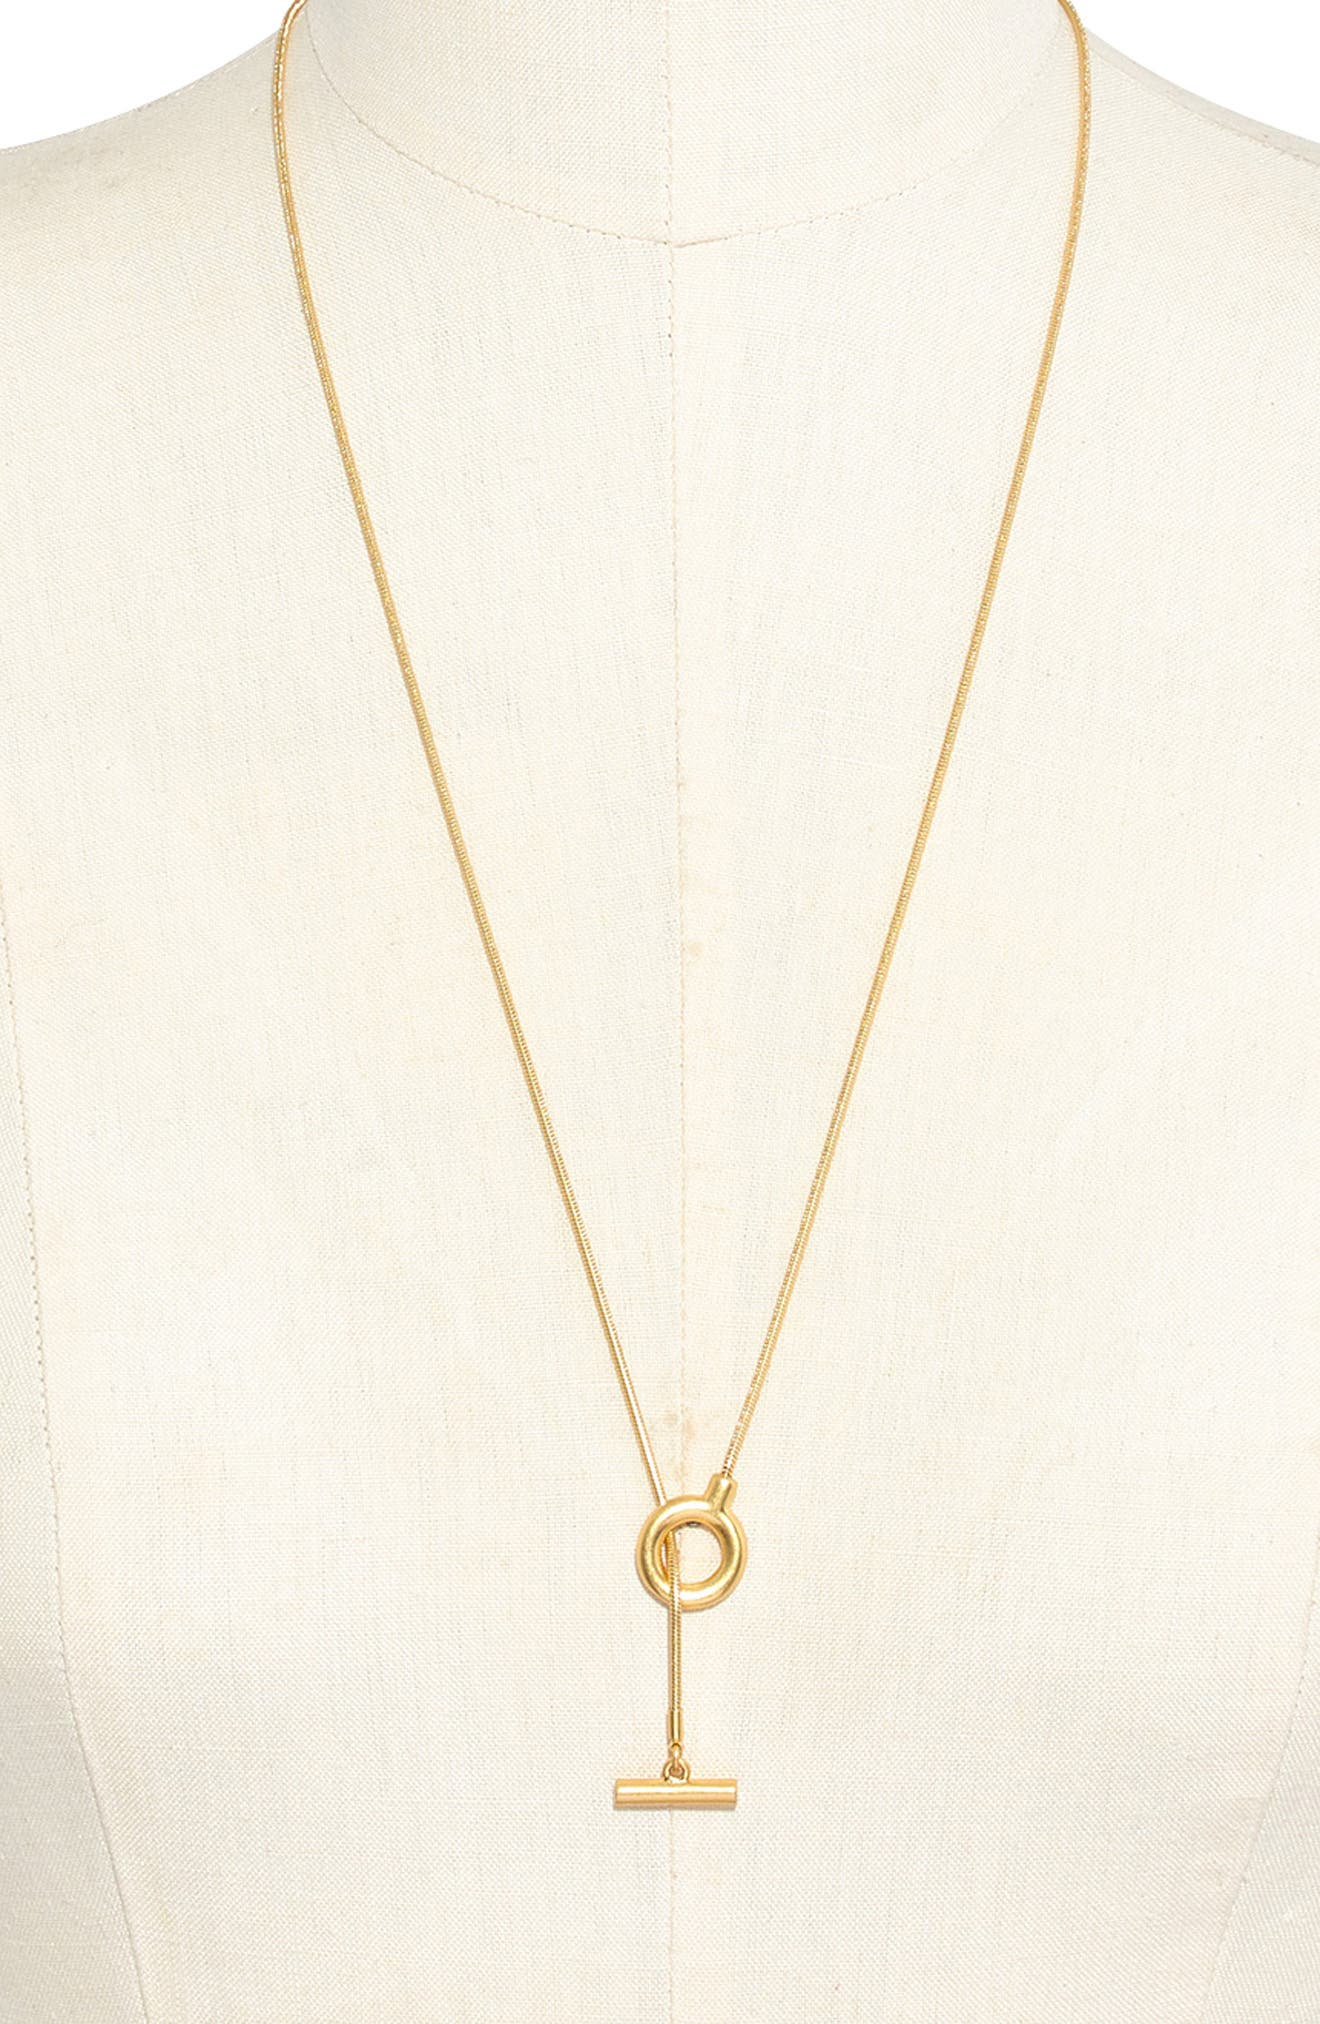 Toggle Lariat Necklace,                             Main thumbnail 1, color,                             VINTAGE GOLD